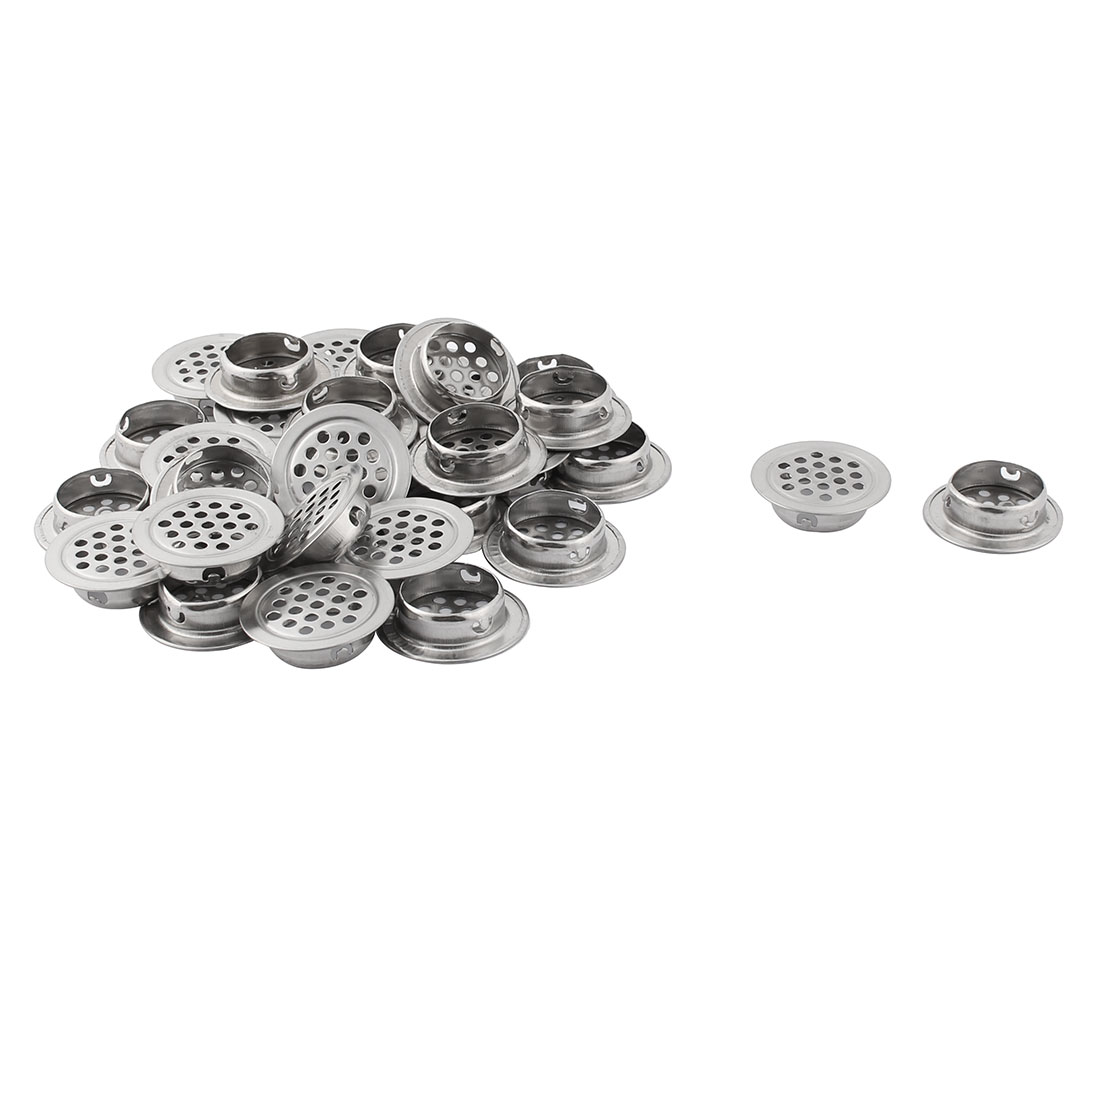 Household Stainless Steel Furniture Perforated Mesh Air Vents 19mm Dia 25pcs